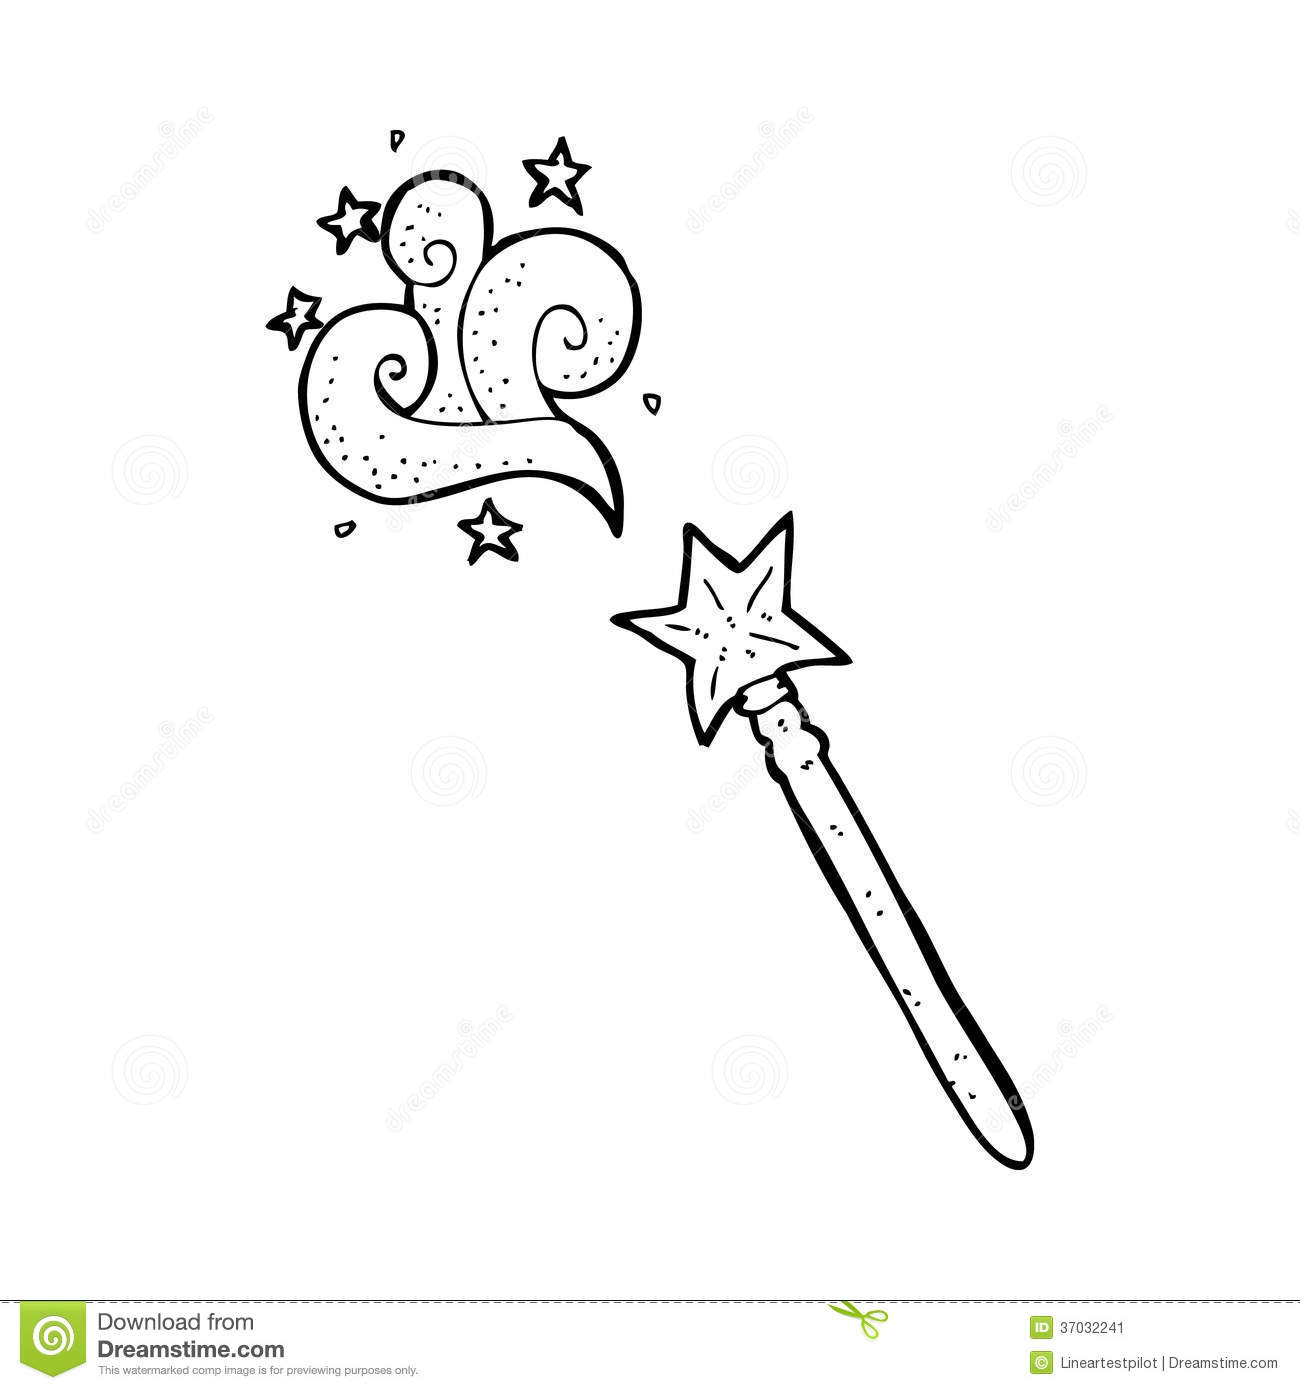 Cartoon magic wand stock illustration. Image of crazy ...